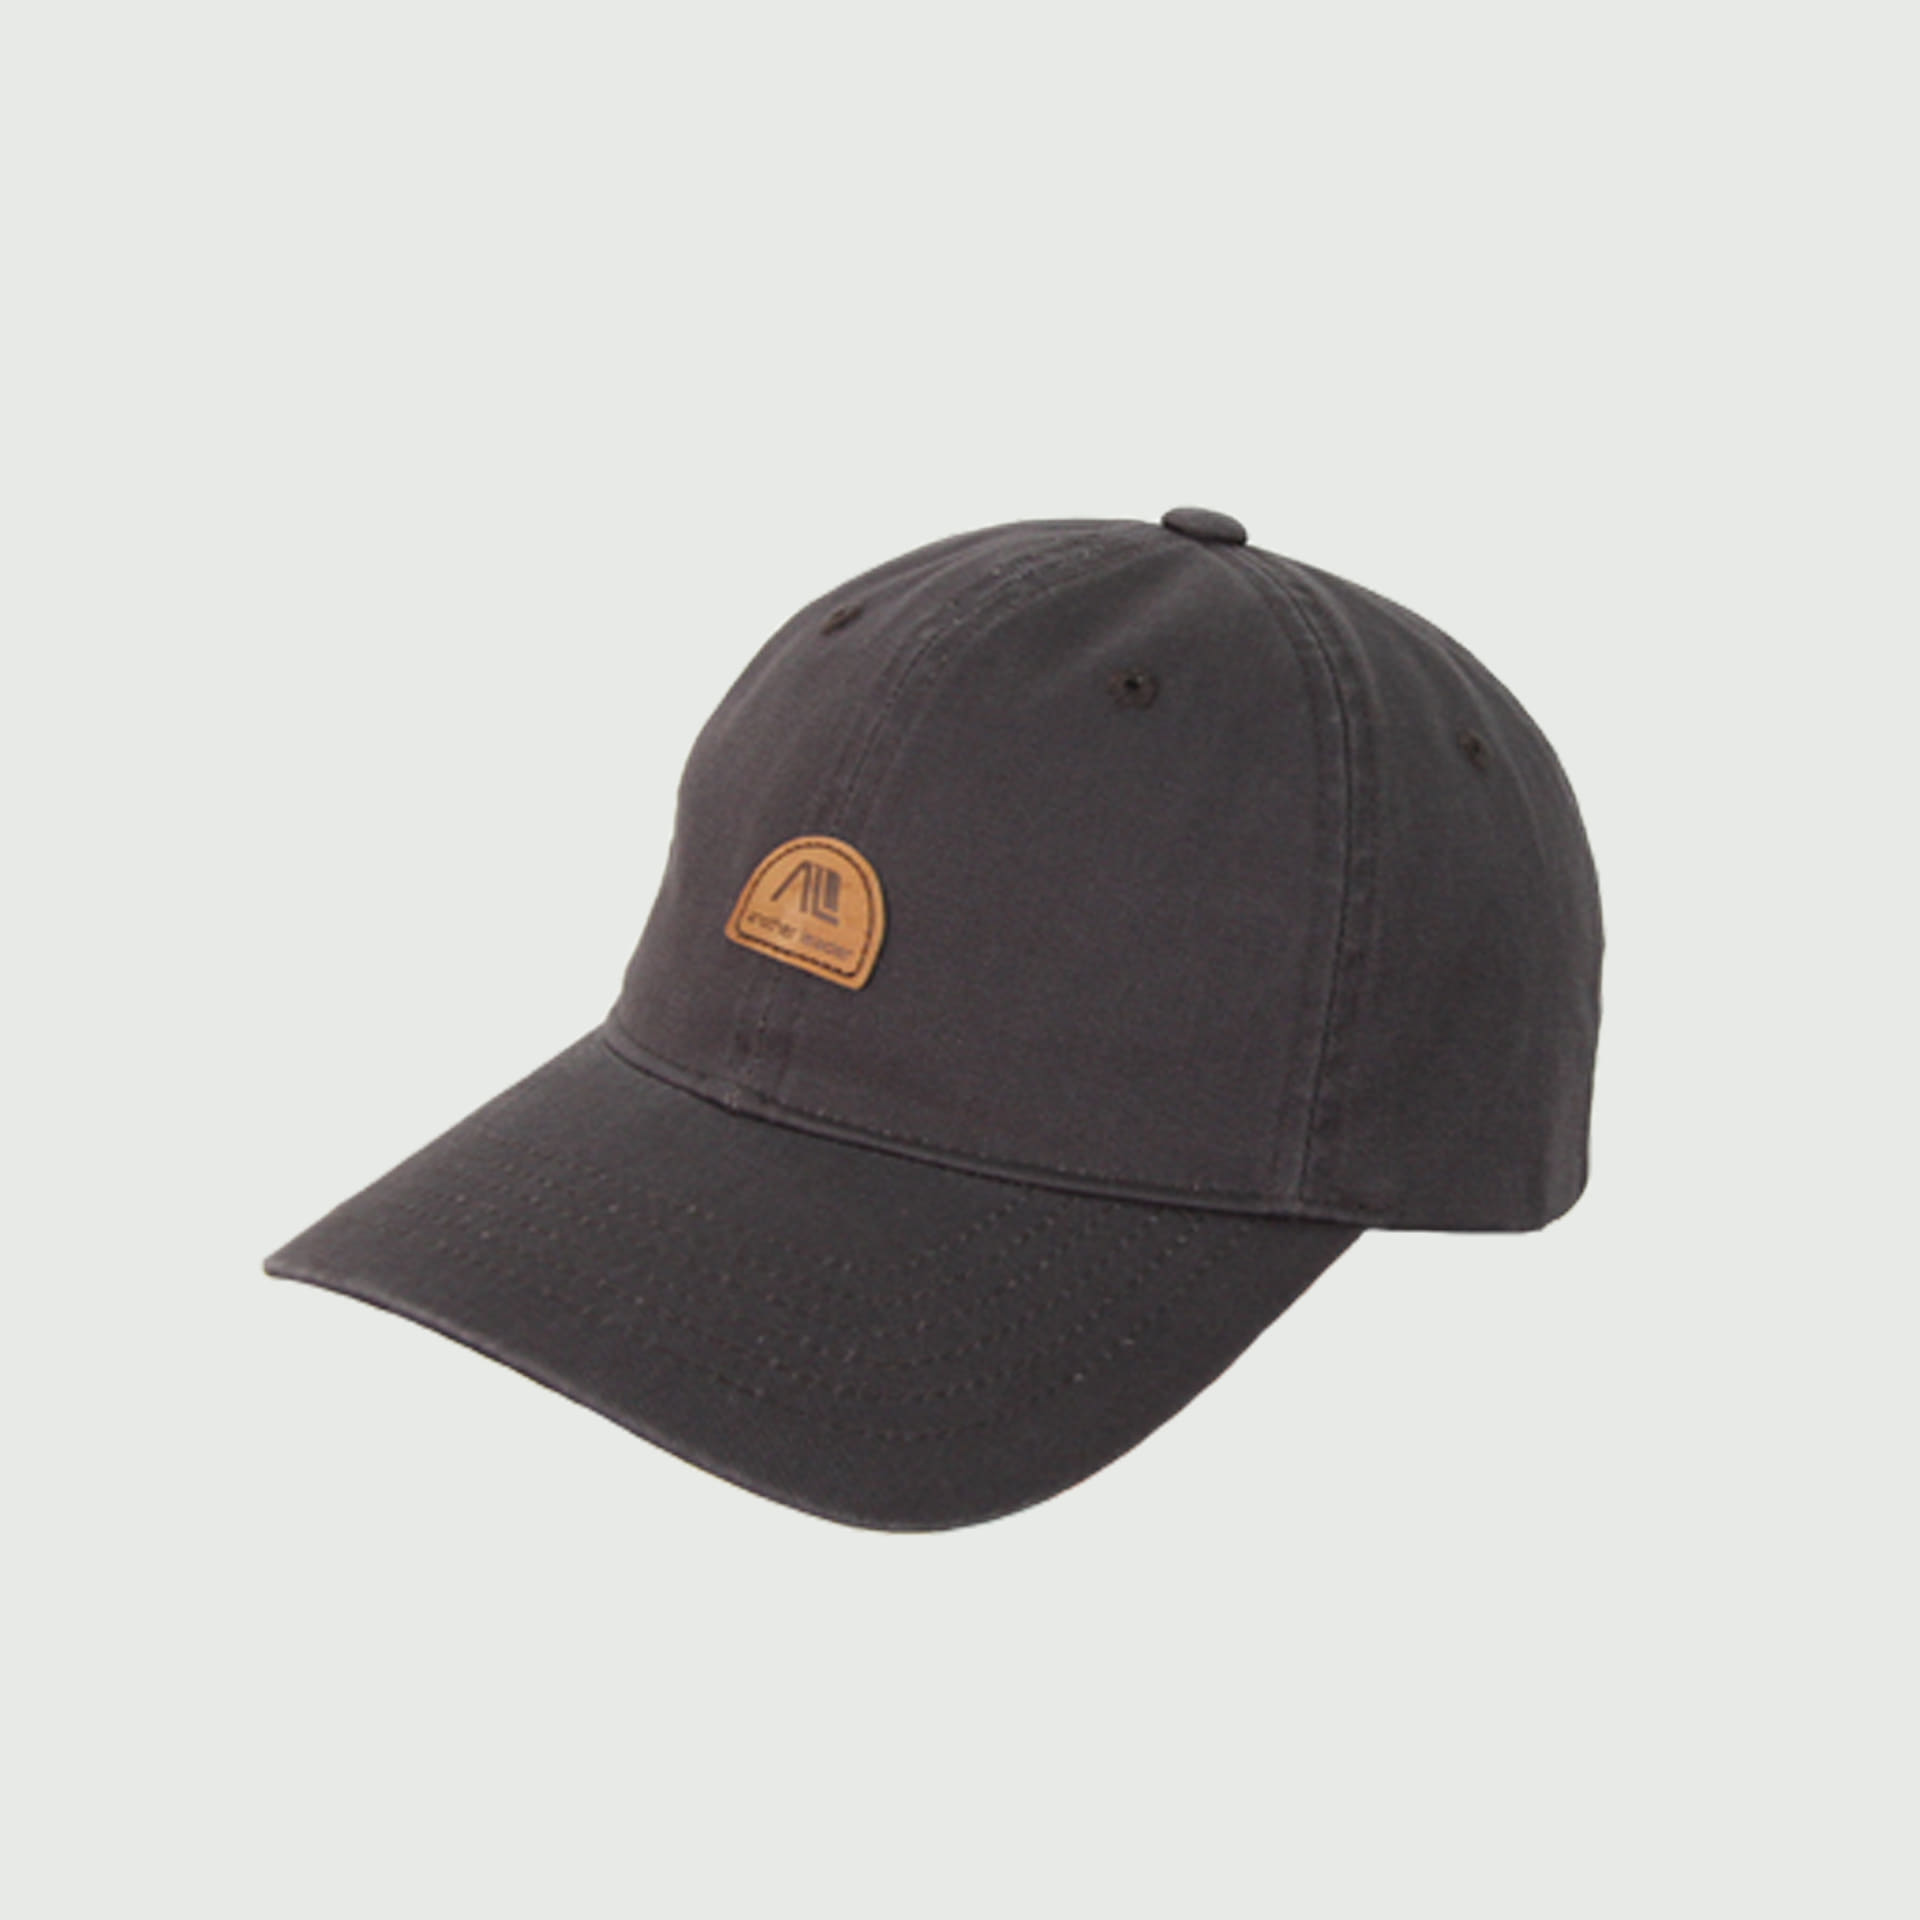 Wappen ball cap(Charcoal)